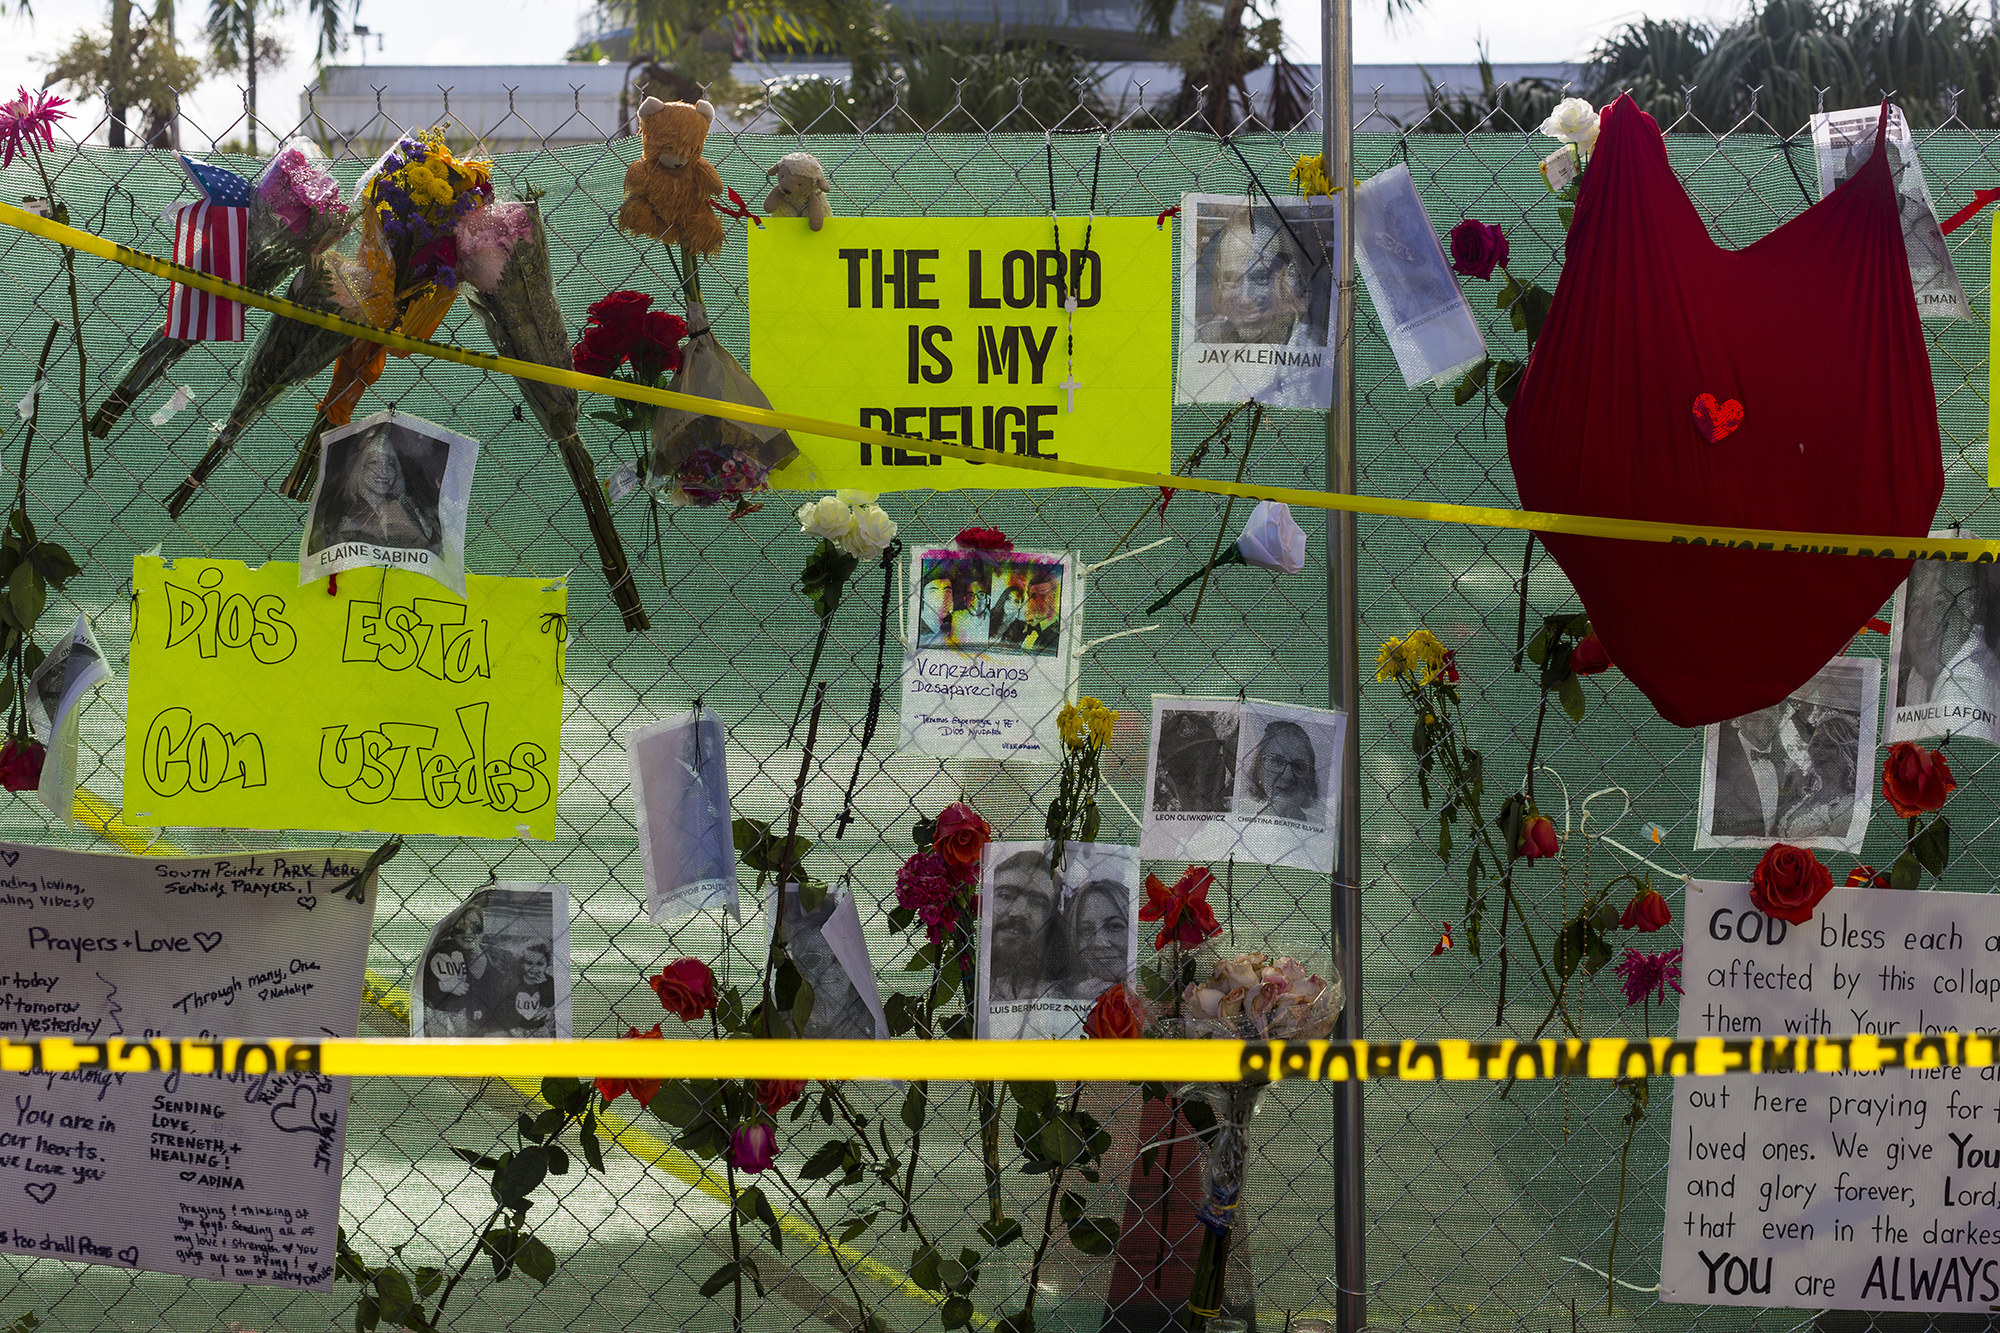 Flowers, posters and photos of people are shown behind police line tape